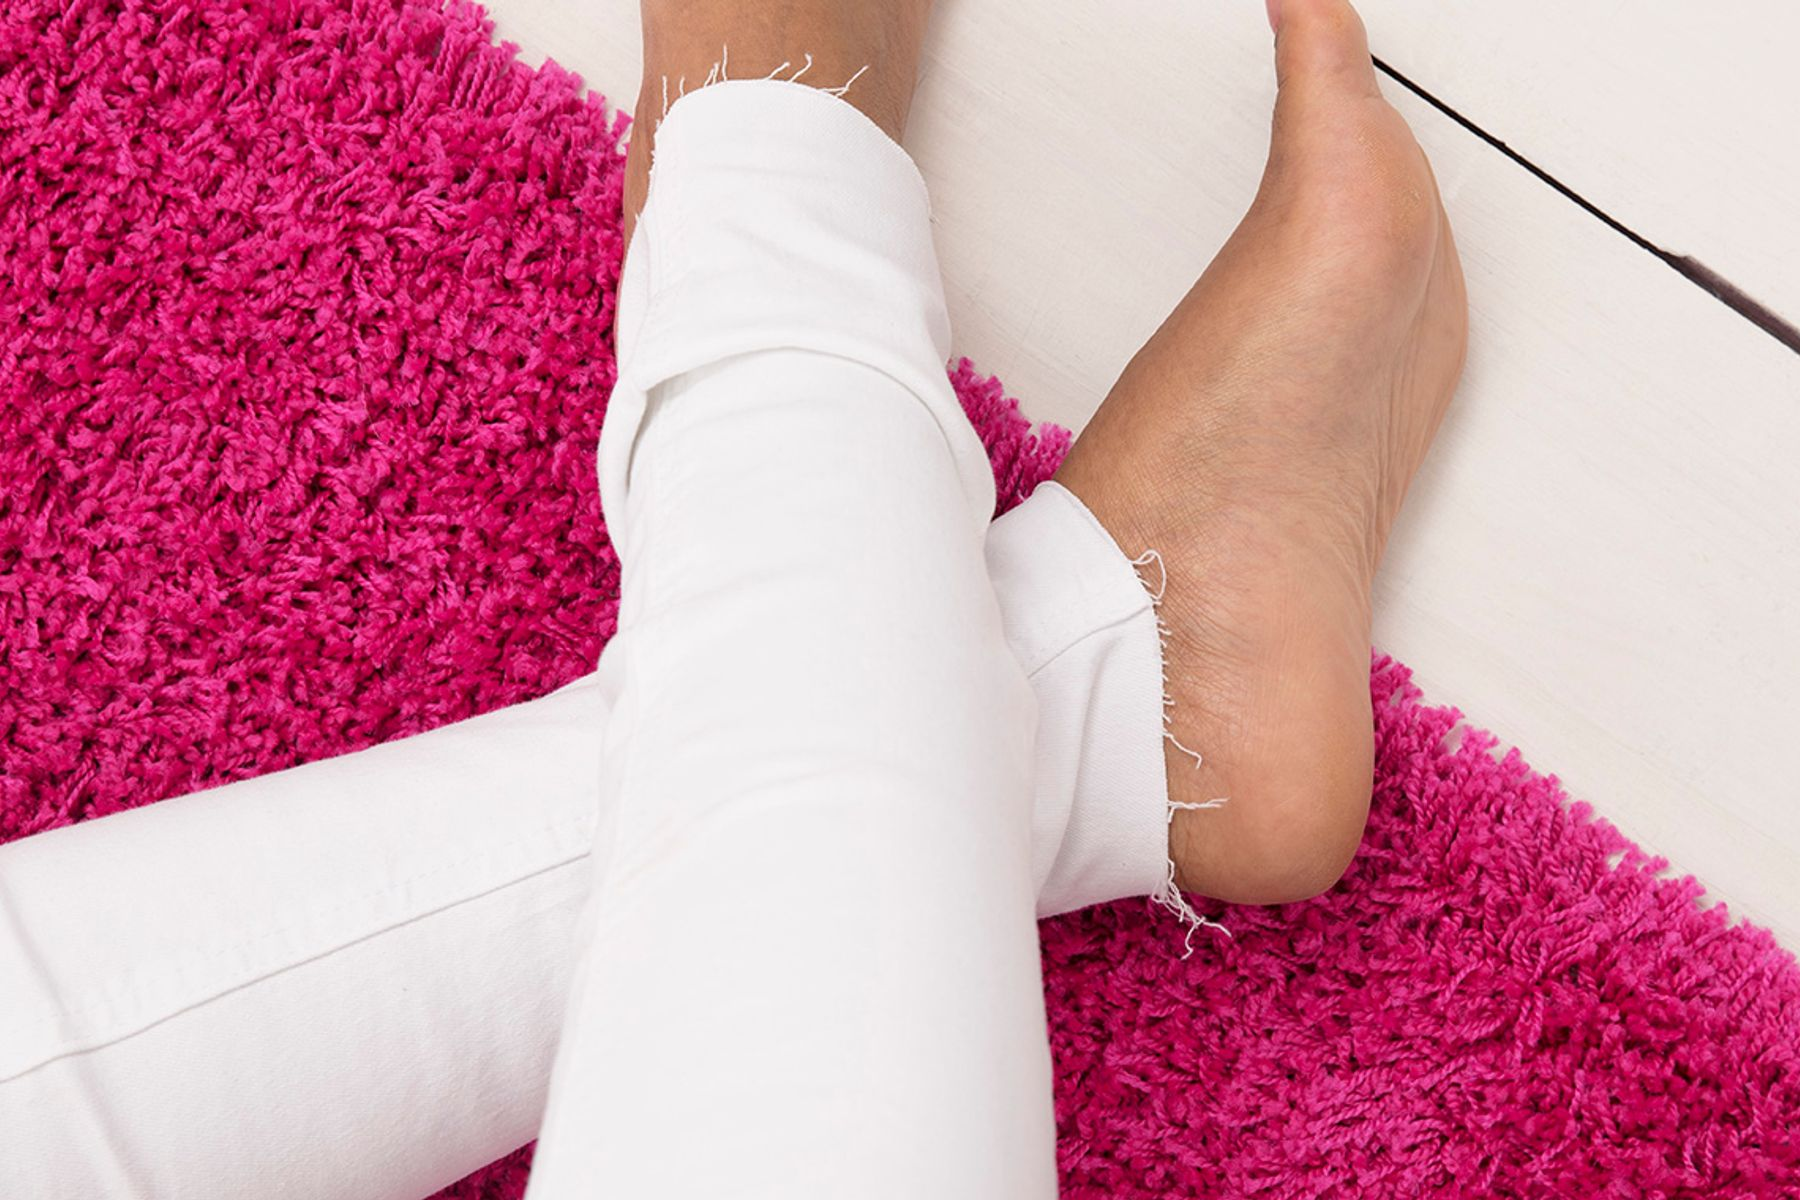 clean white jeans on a pink carpet